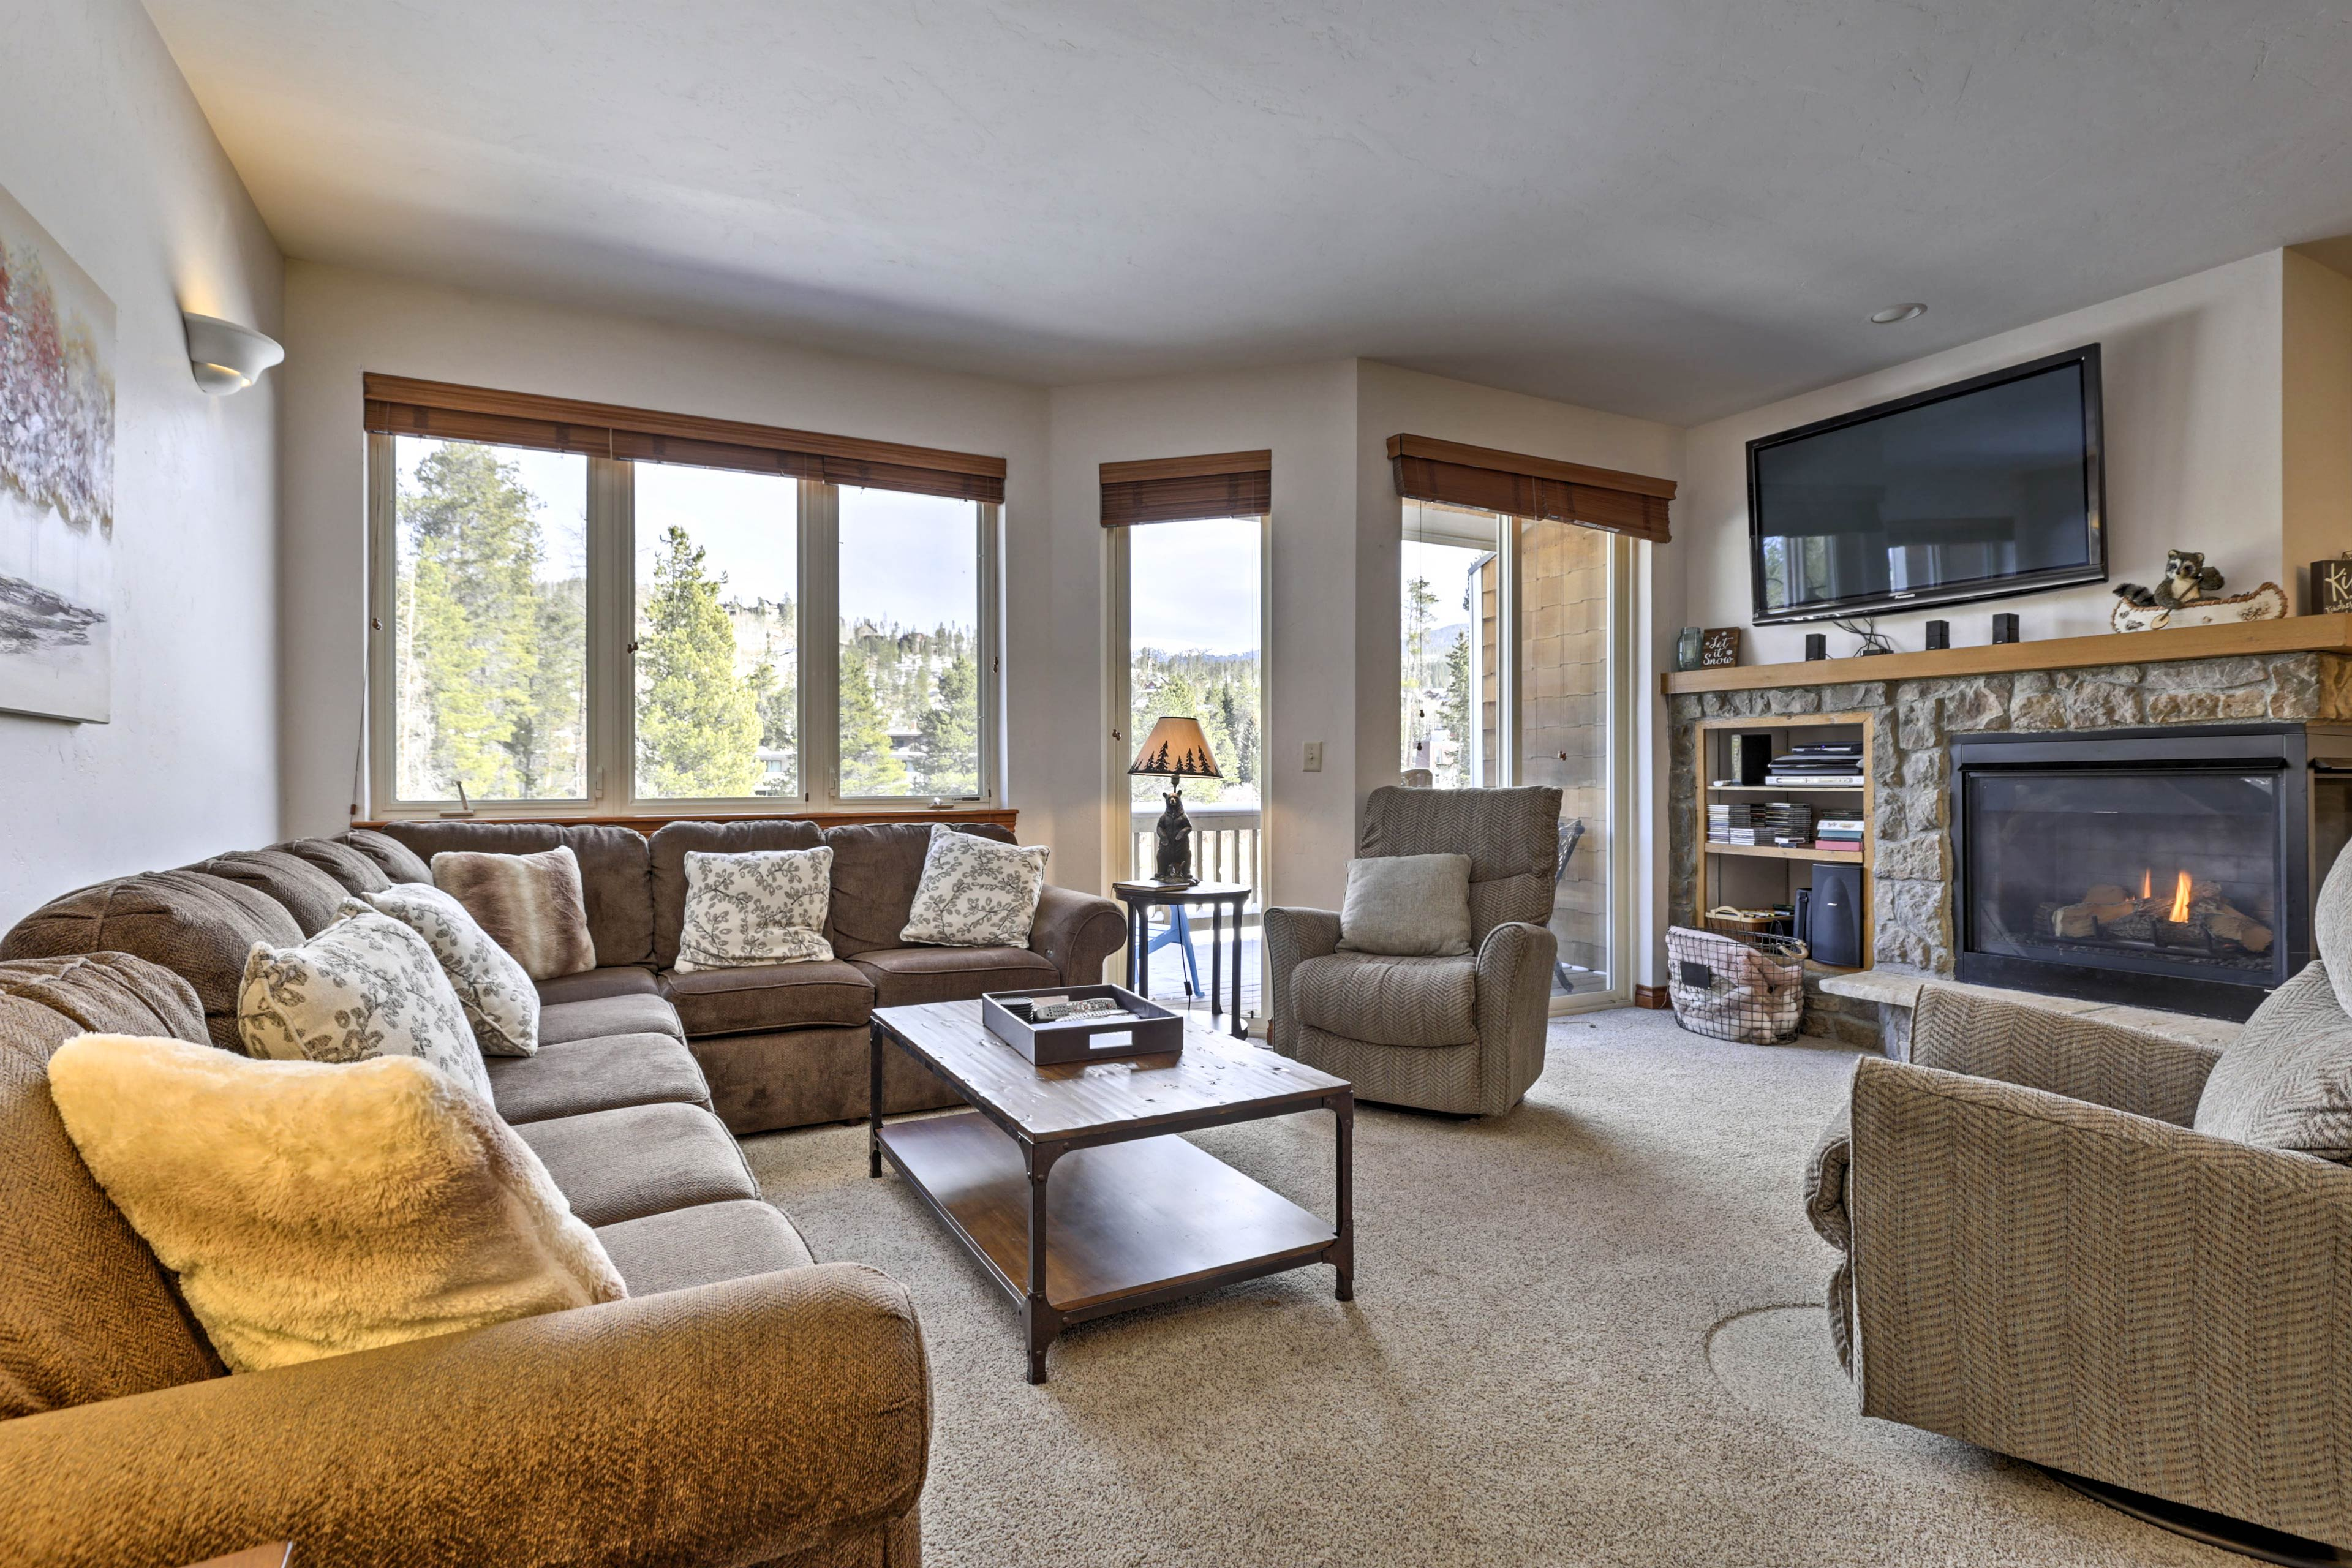 You'll feel right at home in this well-appointed living area.